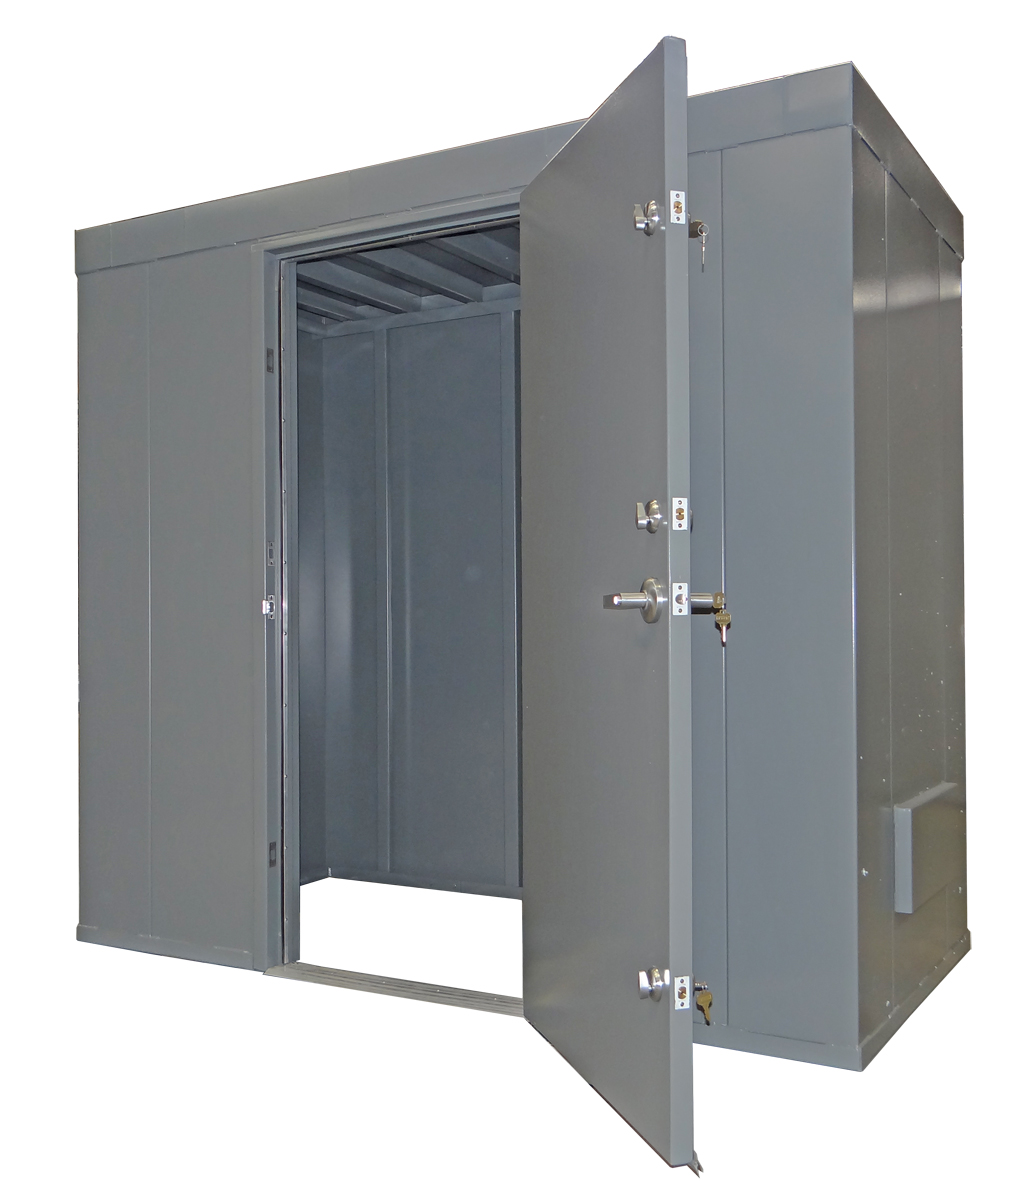 sc 1 st  SECURALL & Tornado Shelters - Storm Shelters \u0026 FEMA Safe Rooms by Securall